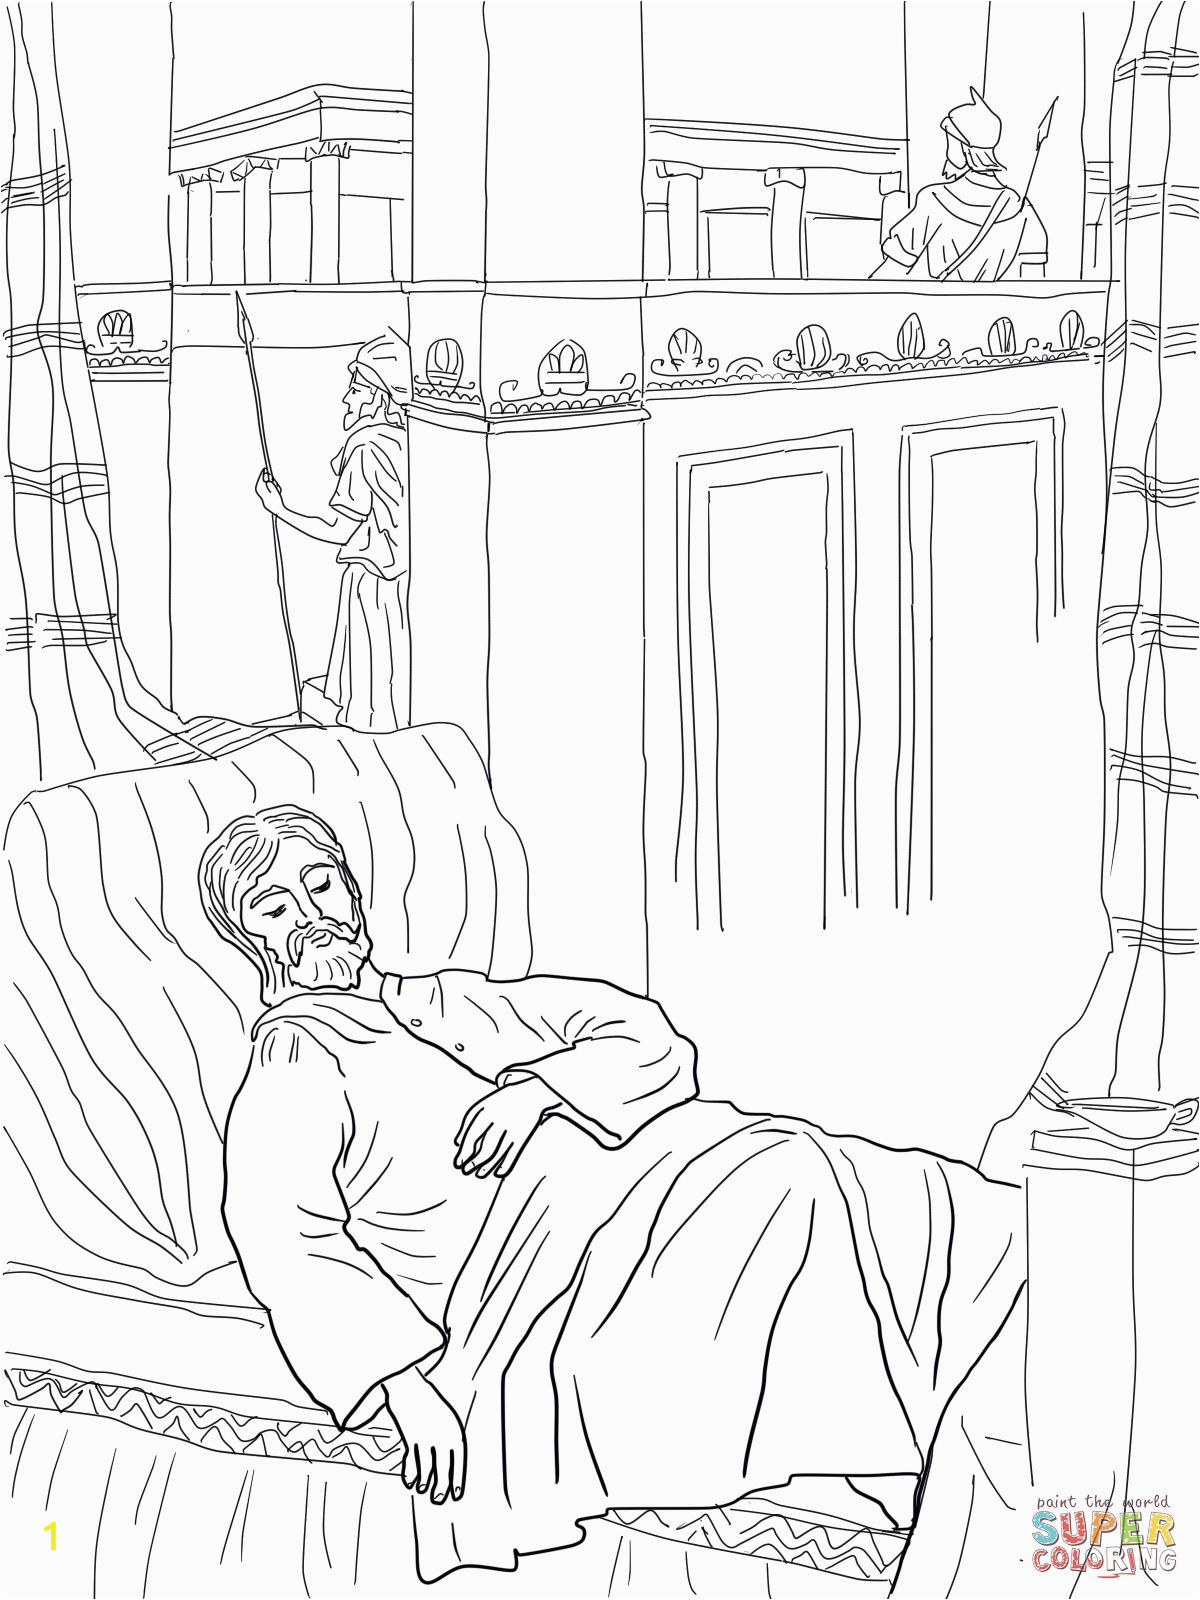 King solomon Coloring Page solomon asks for Wisdom Coloring Page